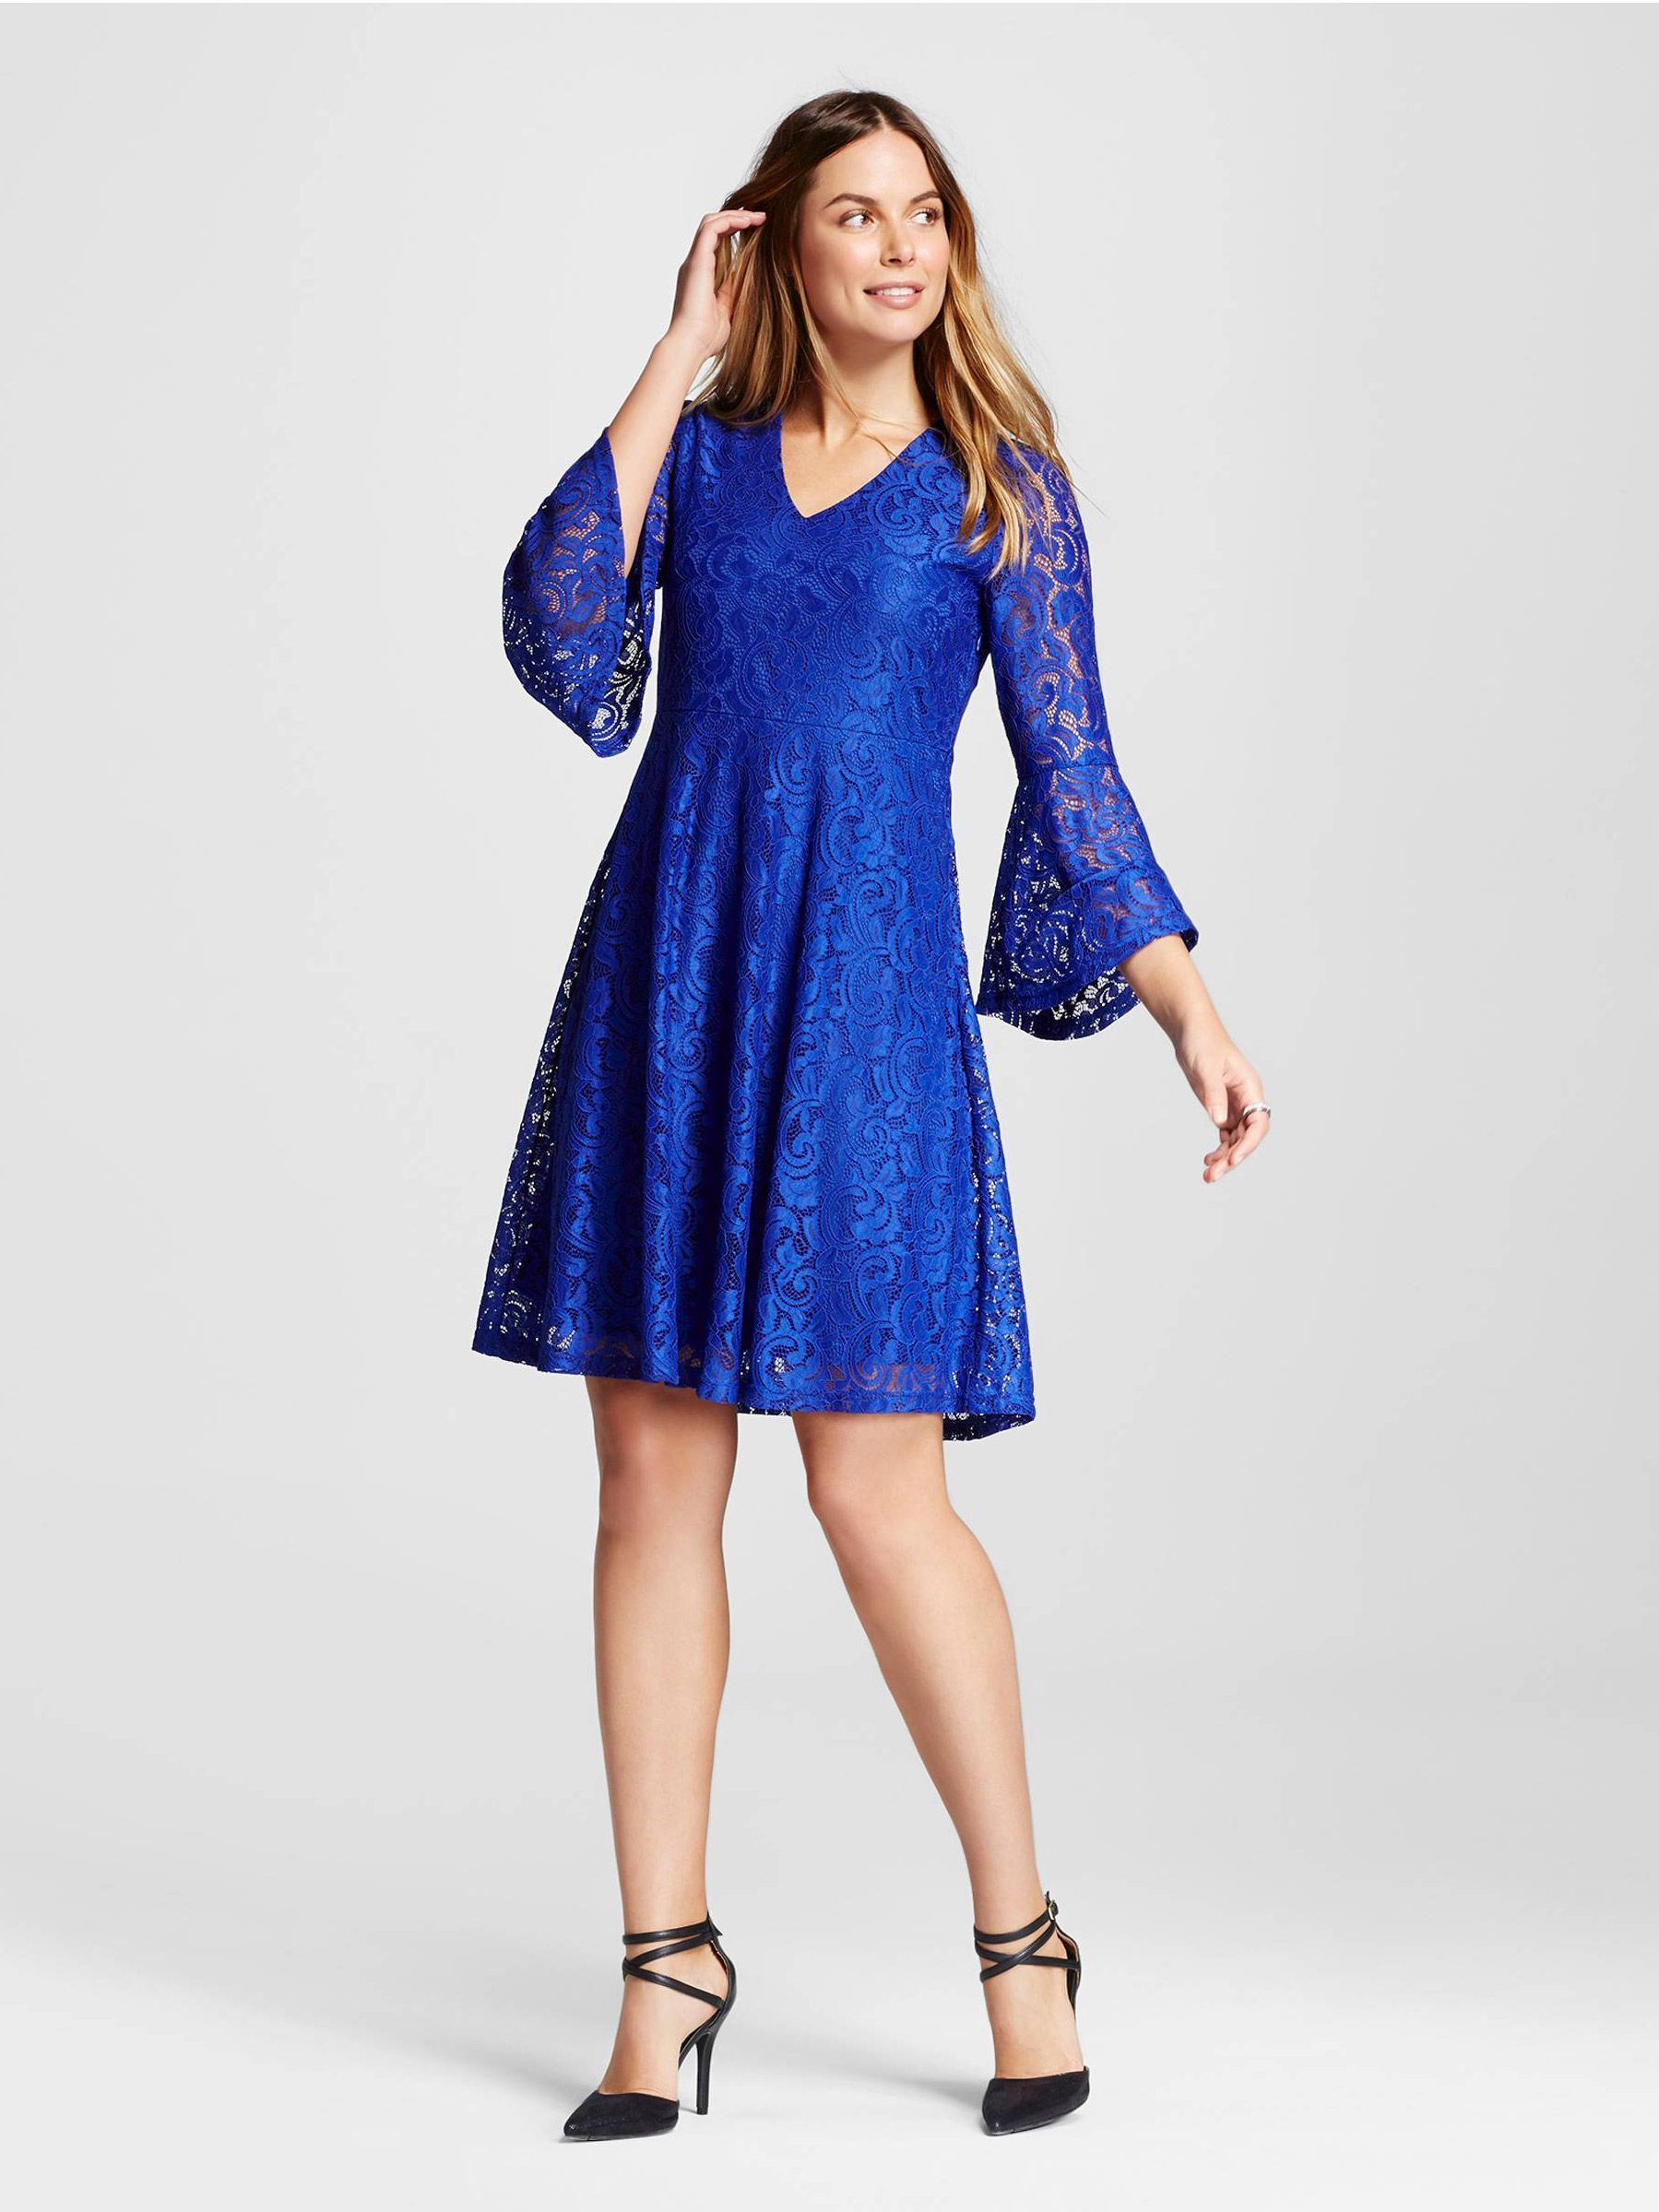 Ideas & Advice by The Knot Blue lace dress outfit, Lace